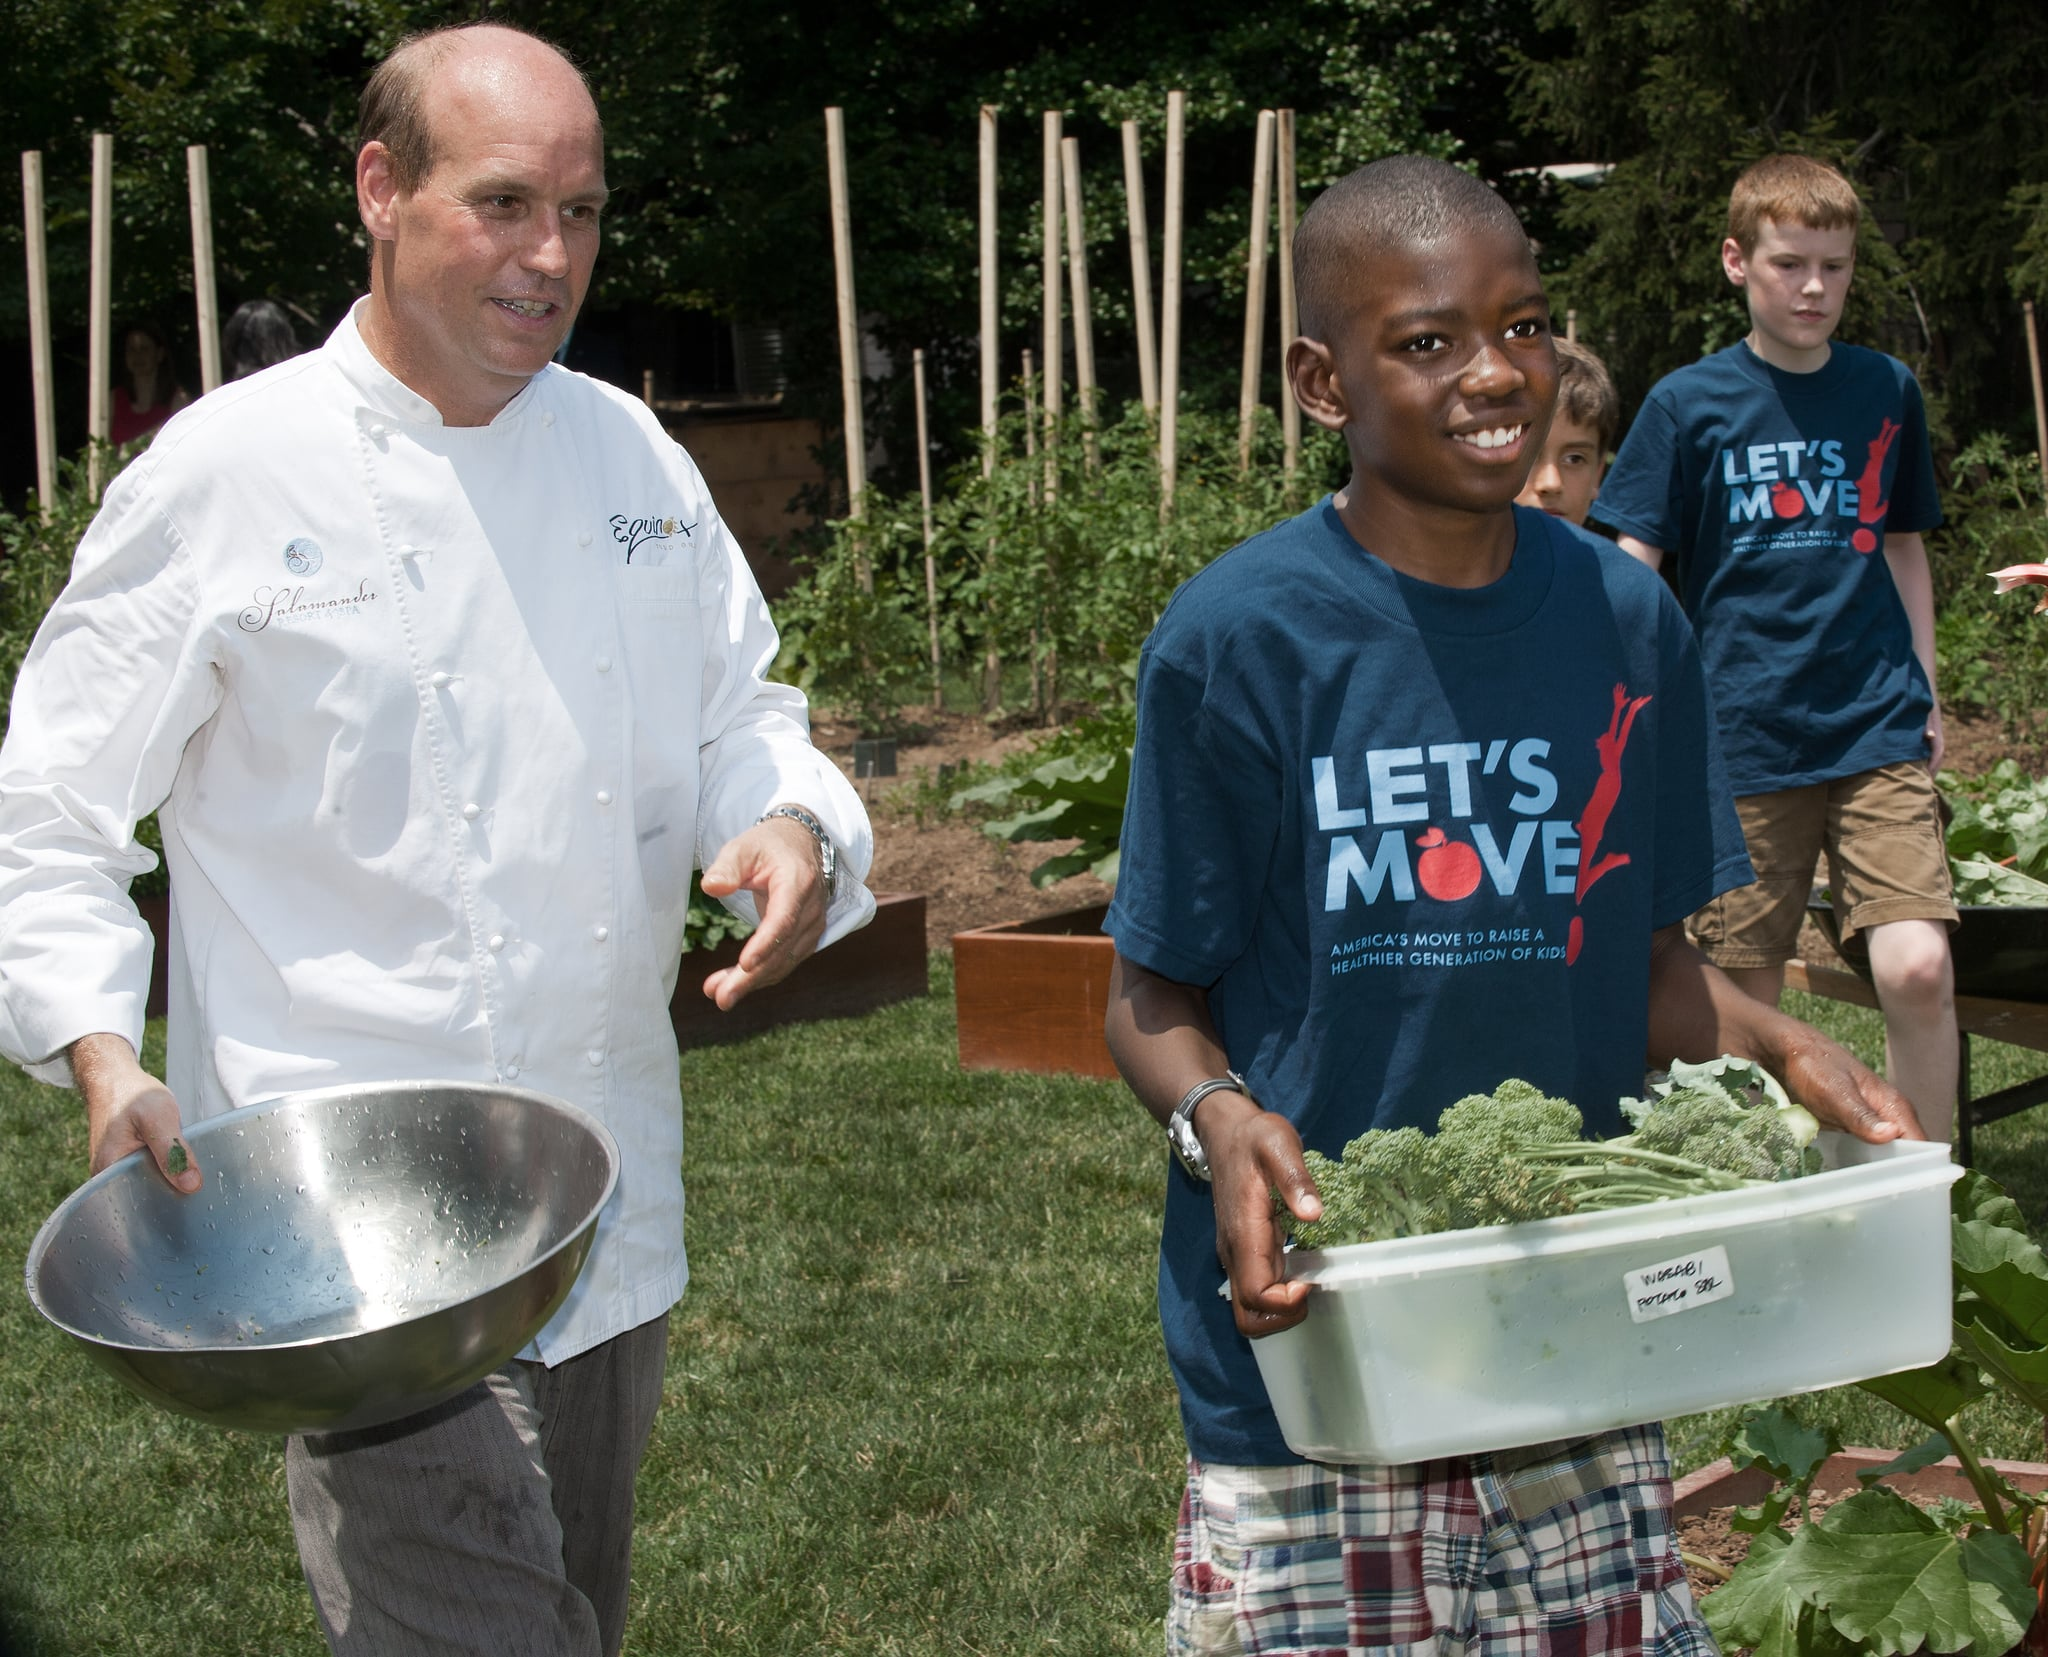 Chef Todd Gray of local DC restaurant Equinox rolled up his sleeves in the garden with elementary school kids as well.